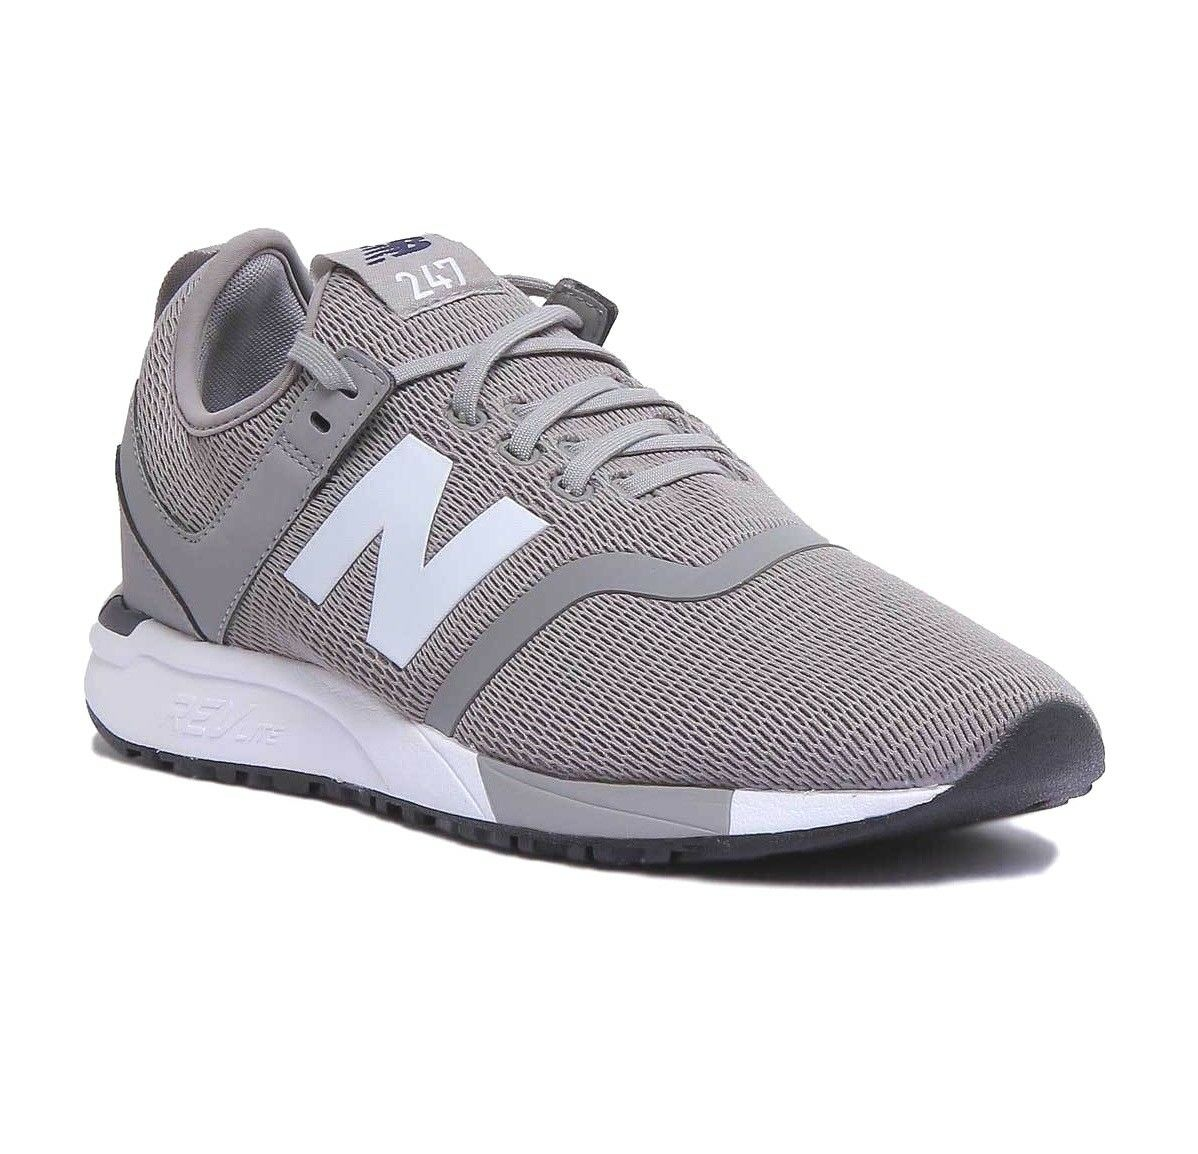 New Balance 247 Grey White Lifestyle Men's Trainers Running shoes MRL247DF